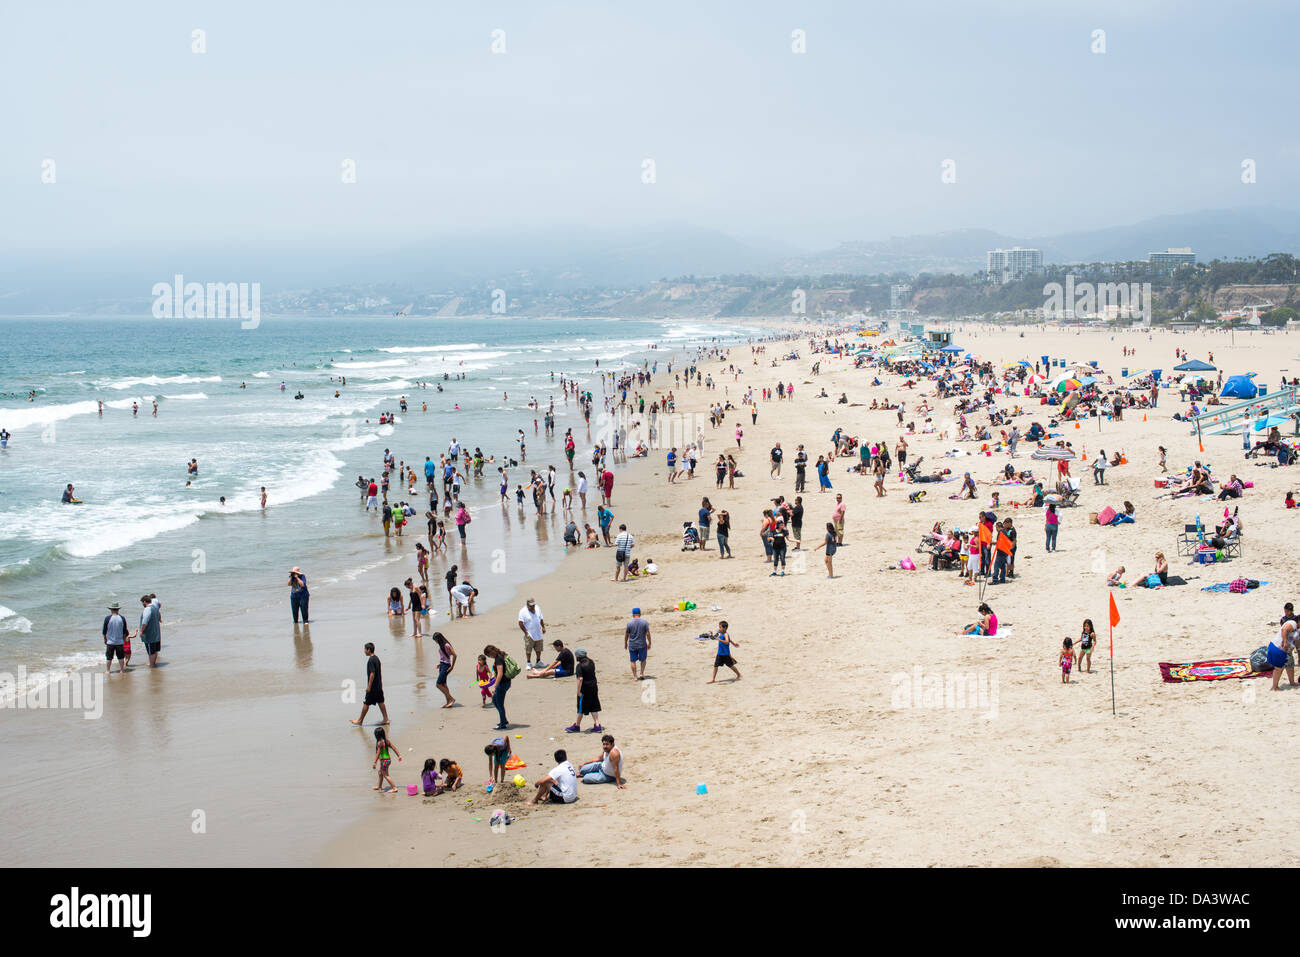 People enjoy the warm summer weather at Santa Monica beach in west Los Angeles, California. - Stock Image